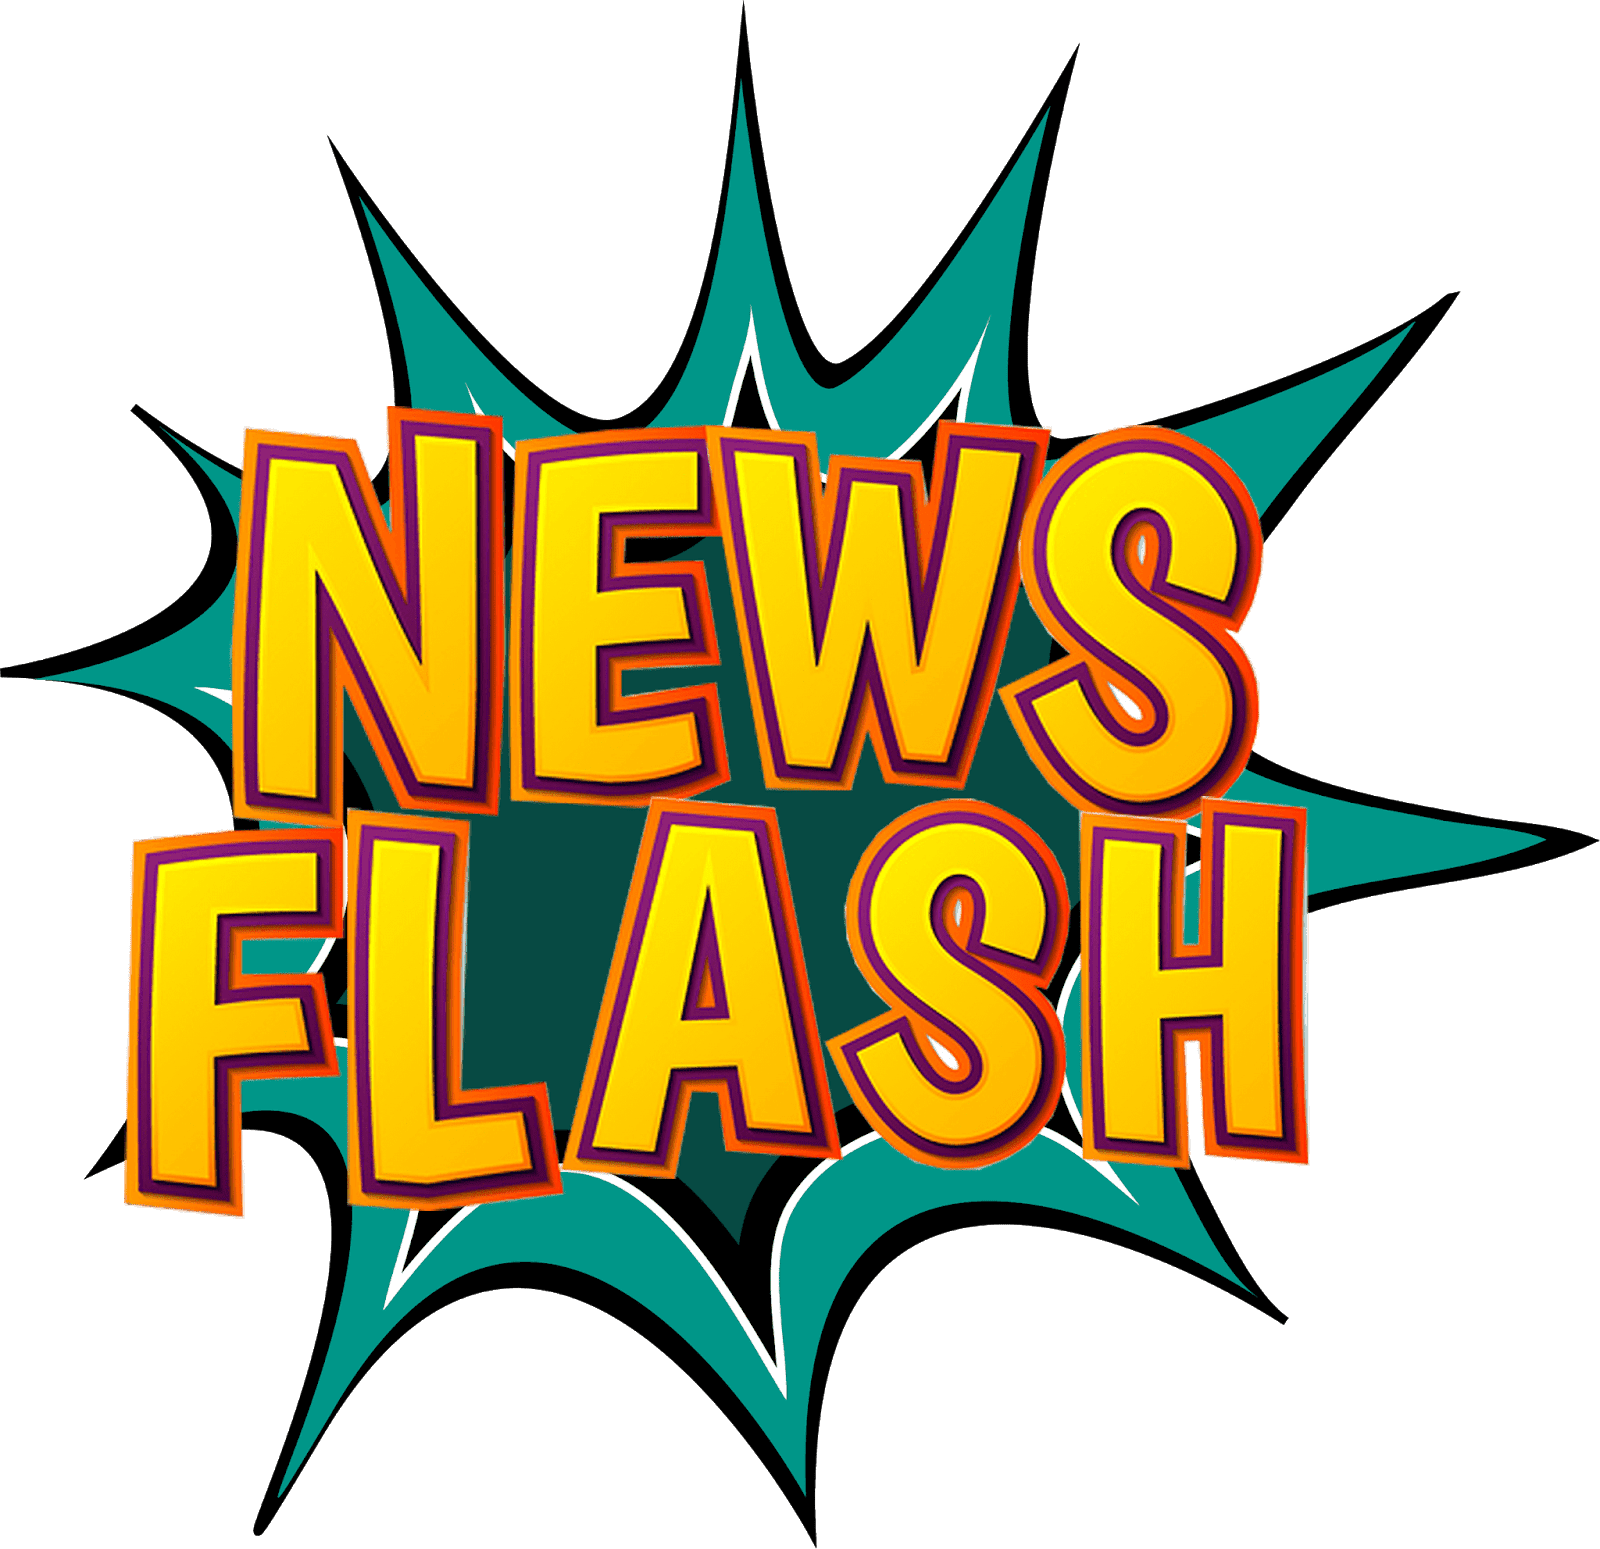 Library of news flash svg freeuse png files ▻▻▻ Clipart.